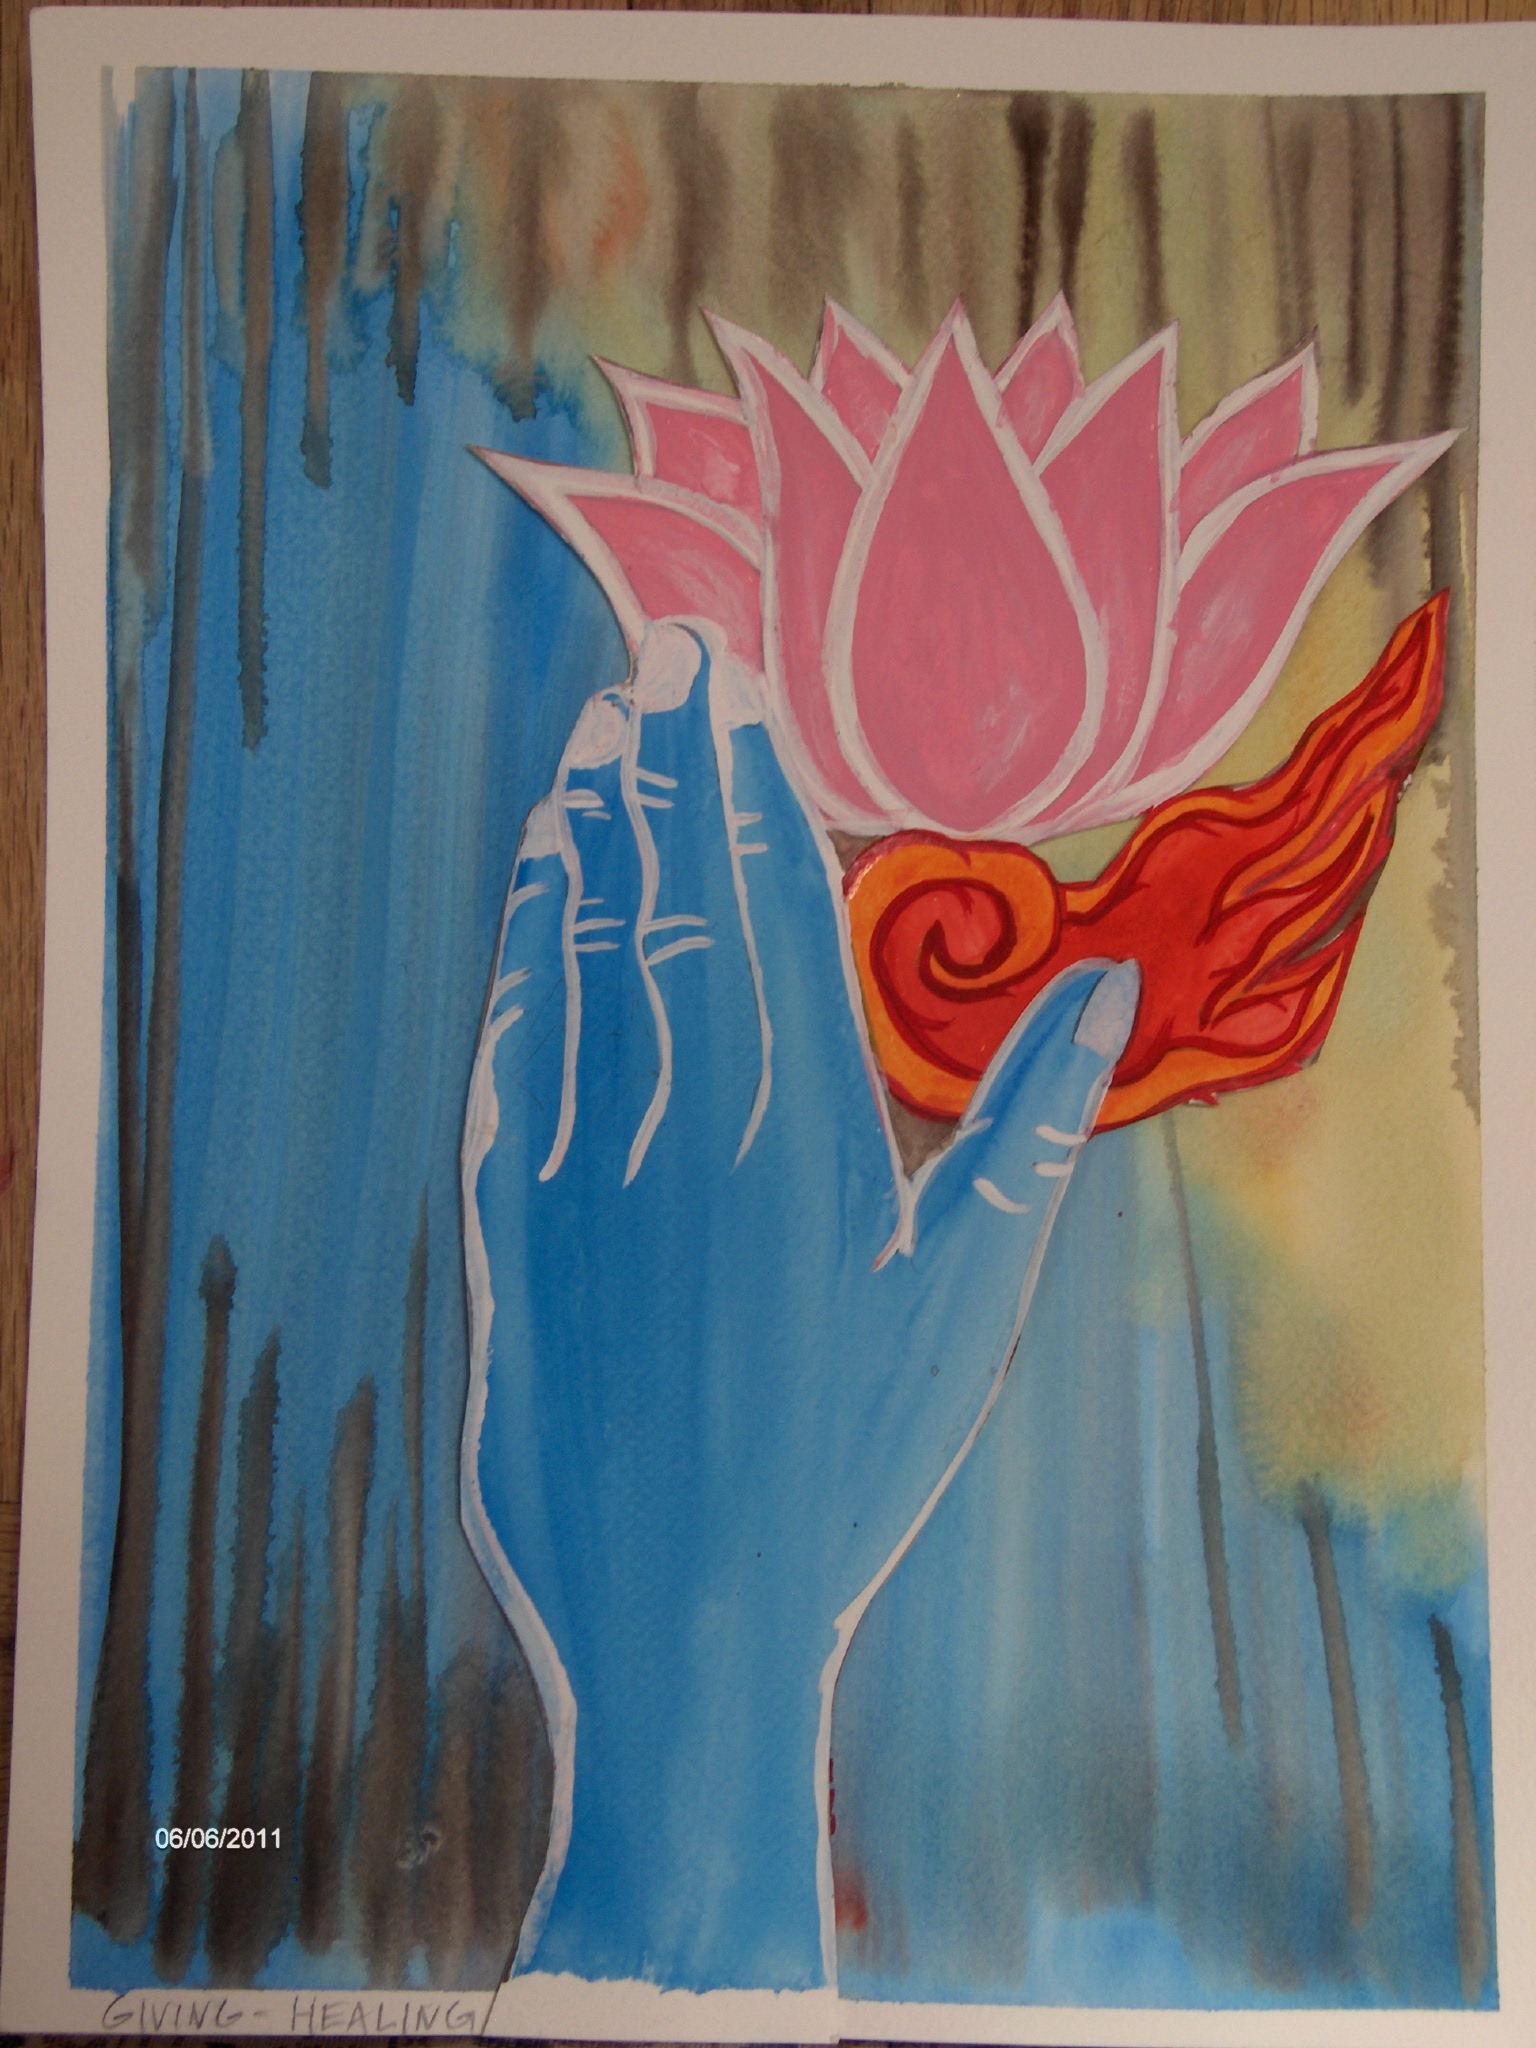 giving healing by Deana Plymale